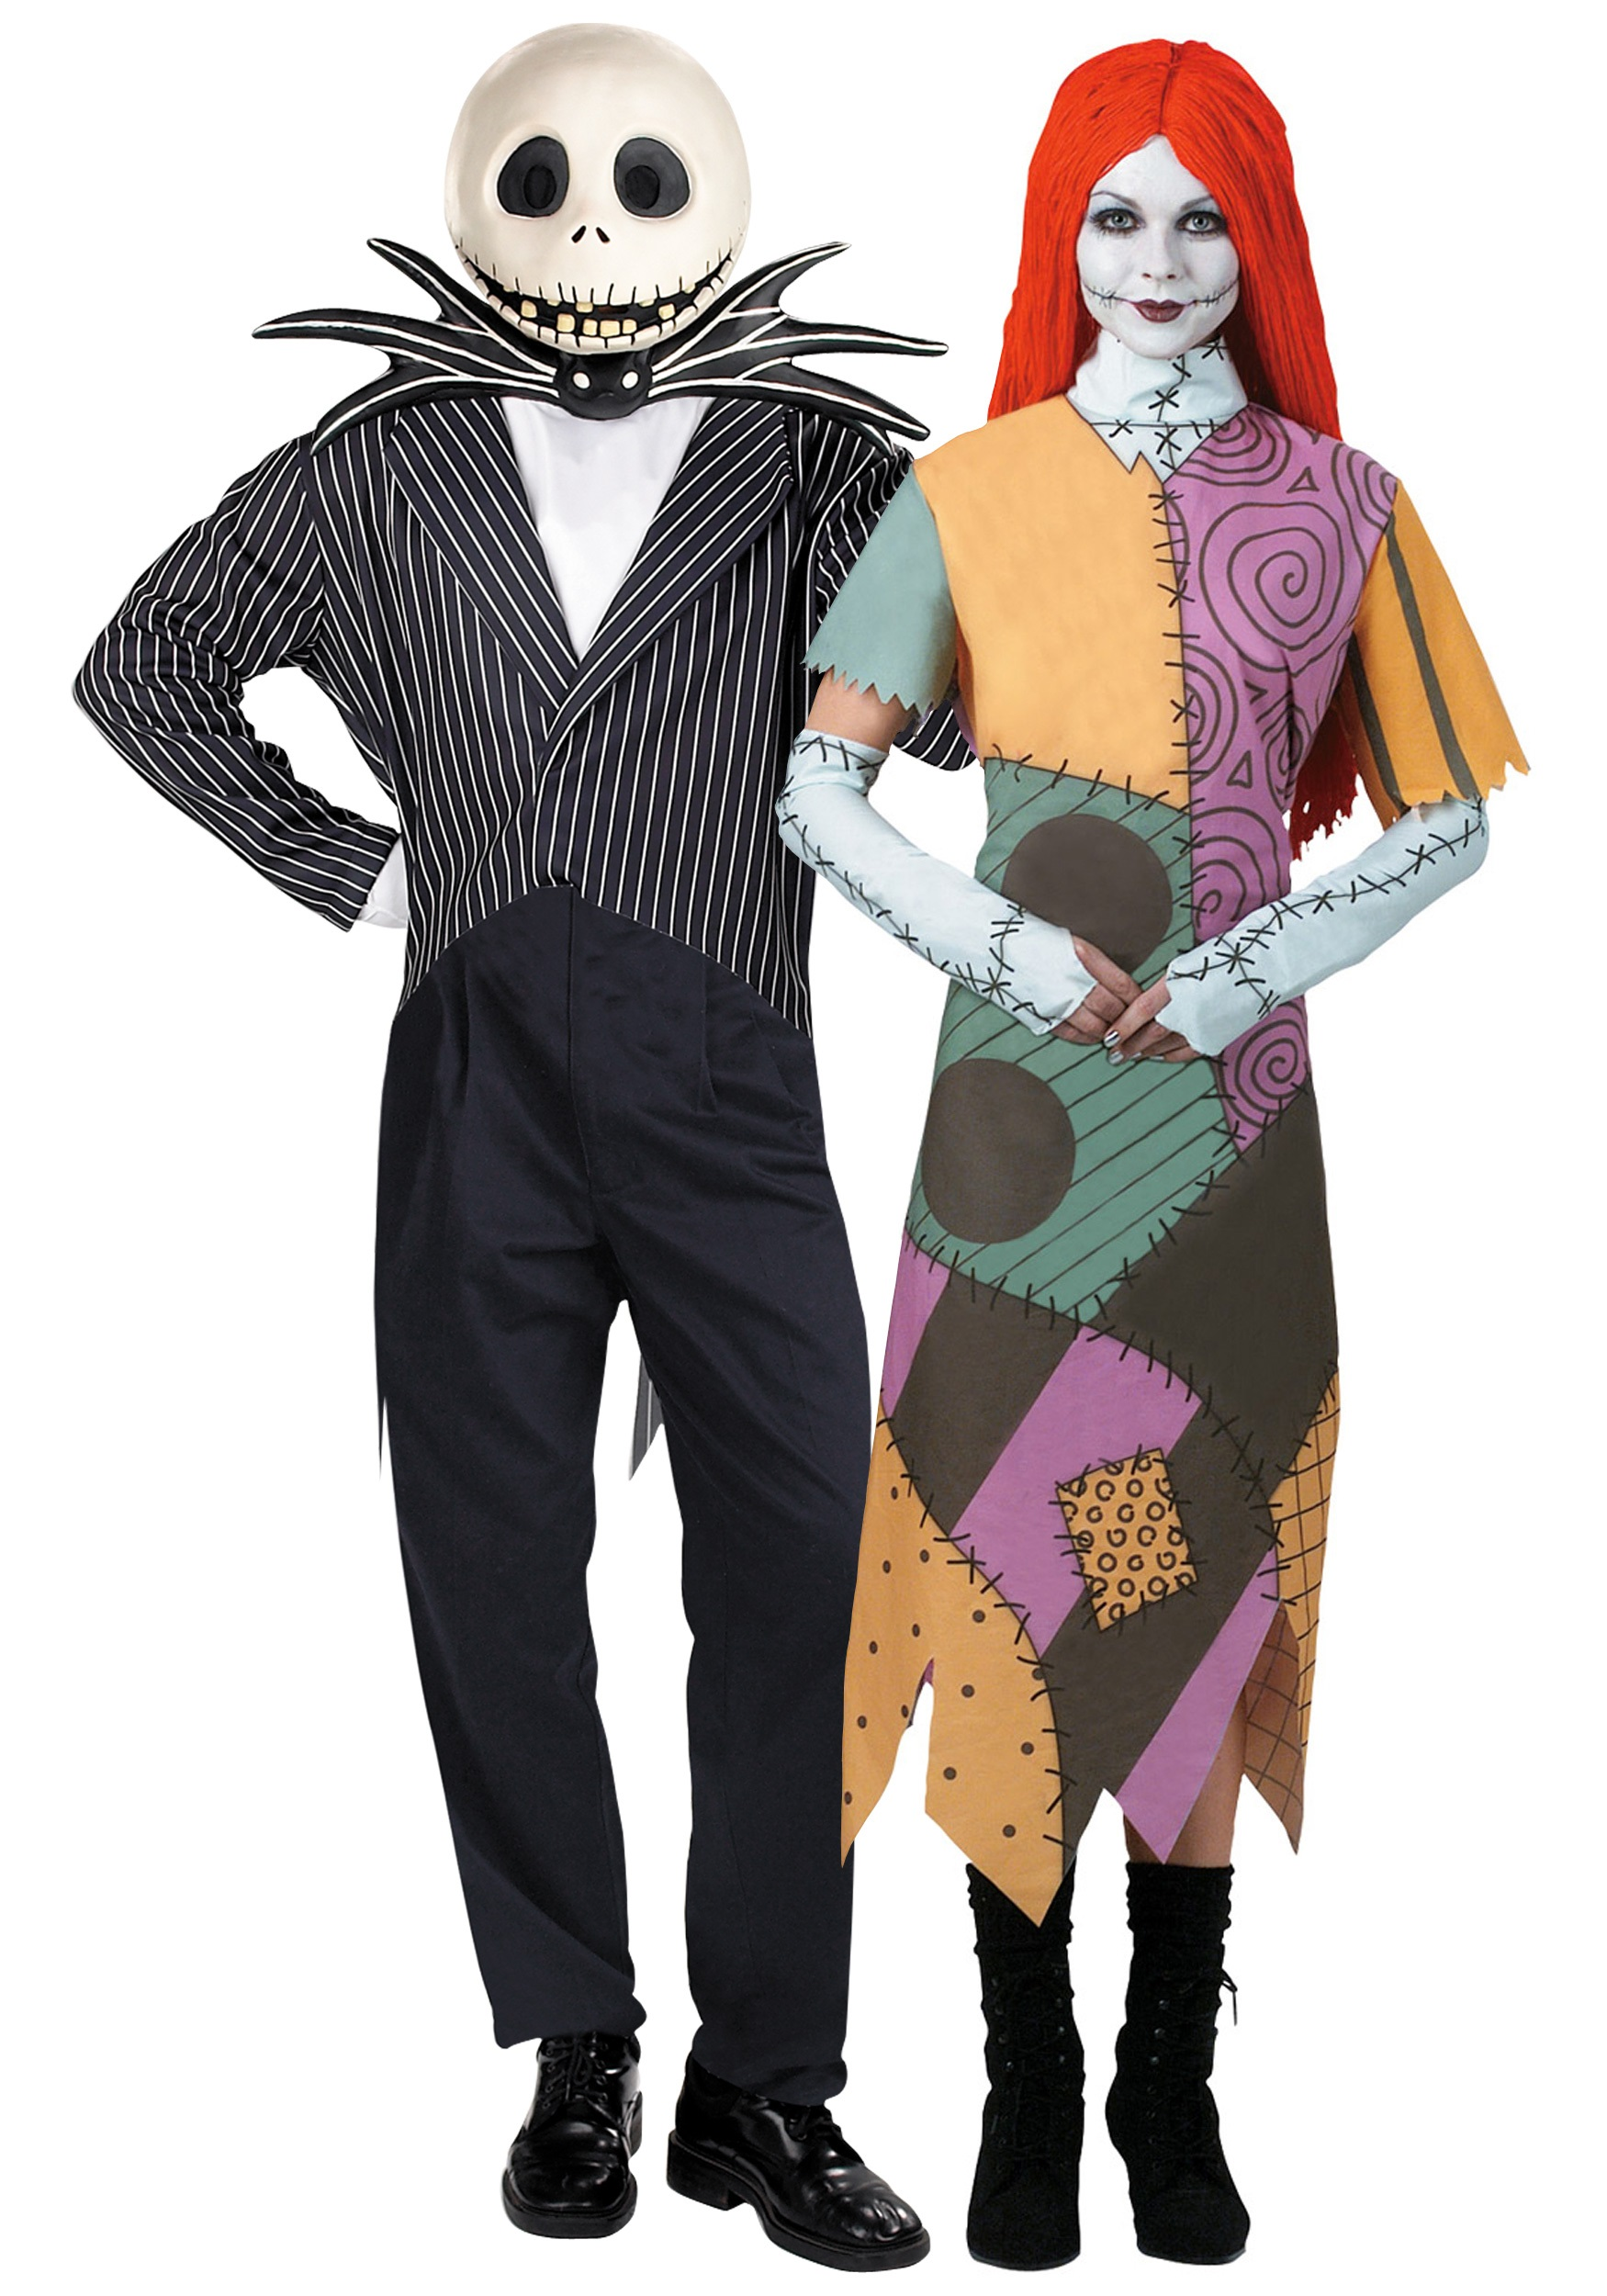 nightmare before christmas couple costume - Nightmare Before Christmas Halloween Costume